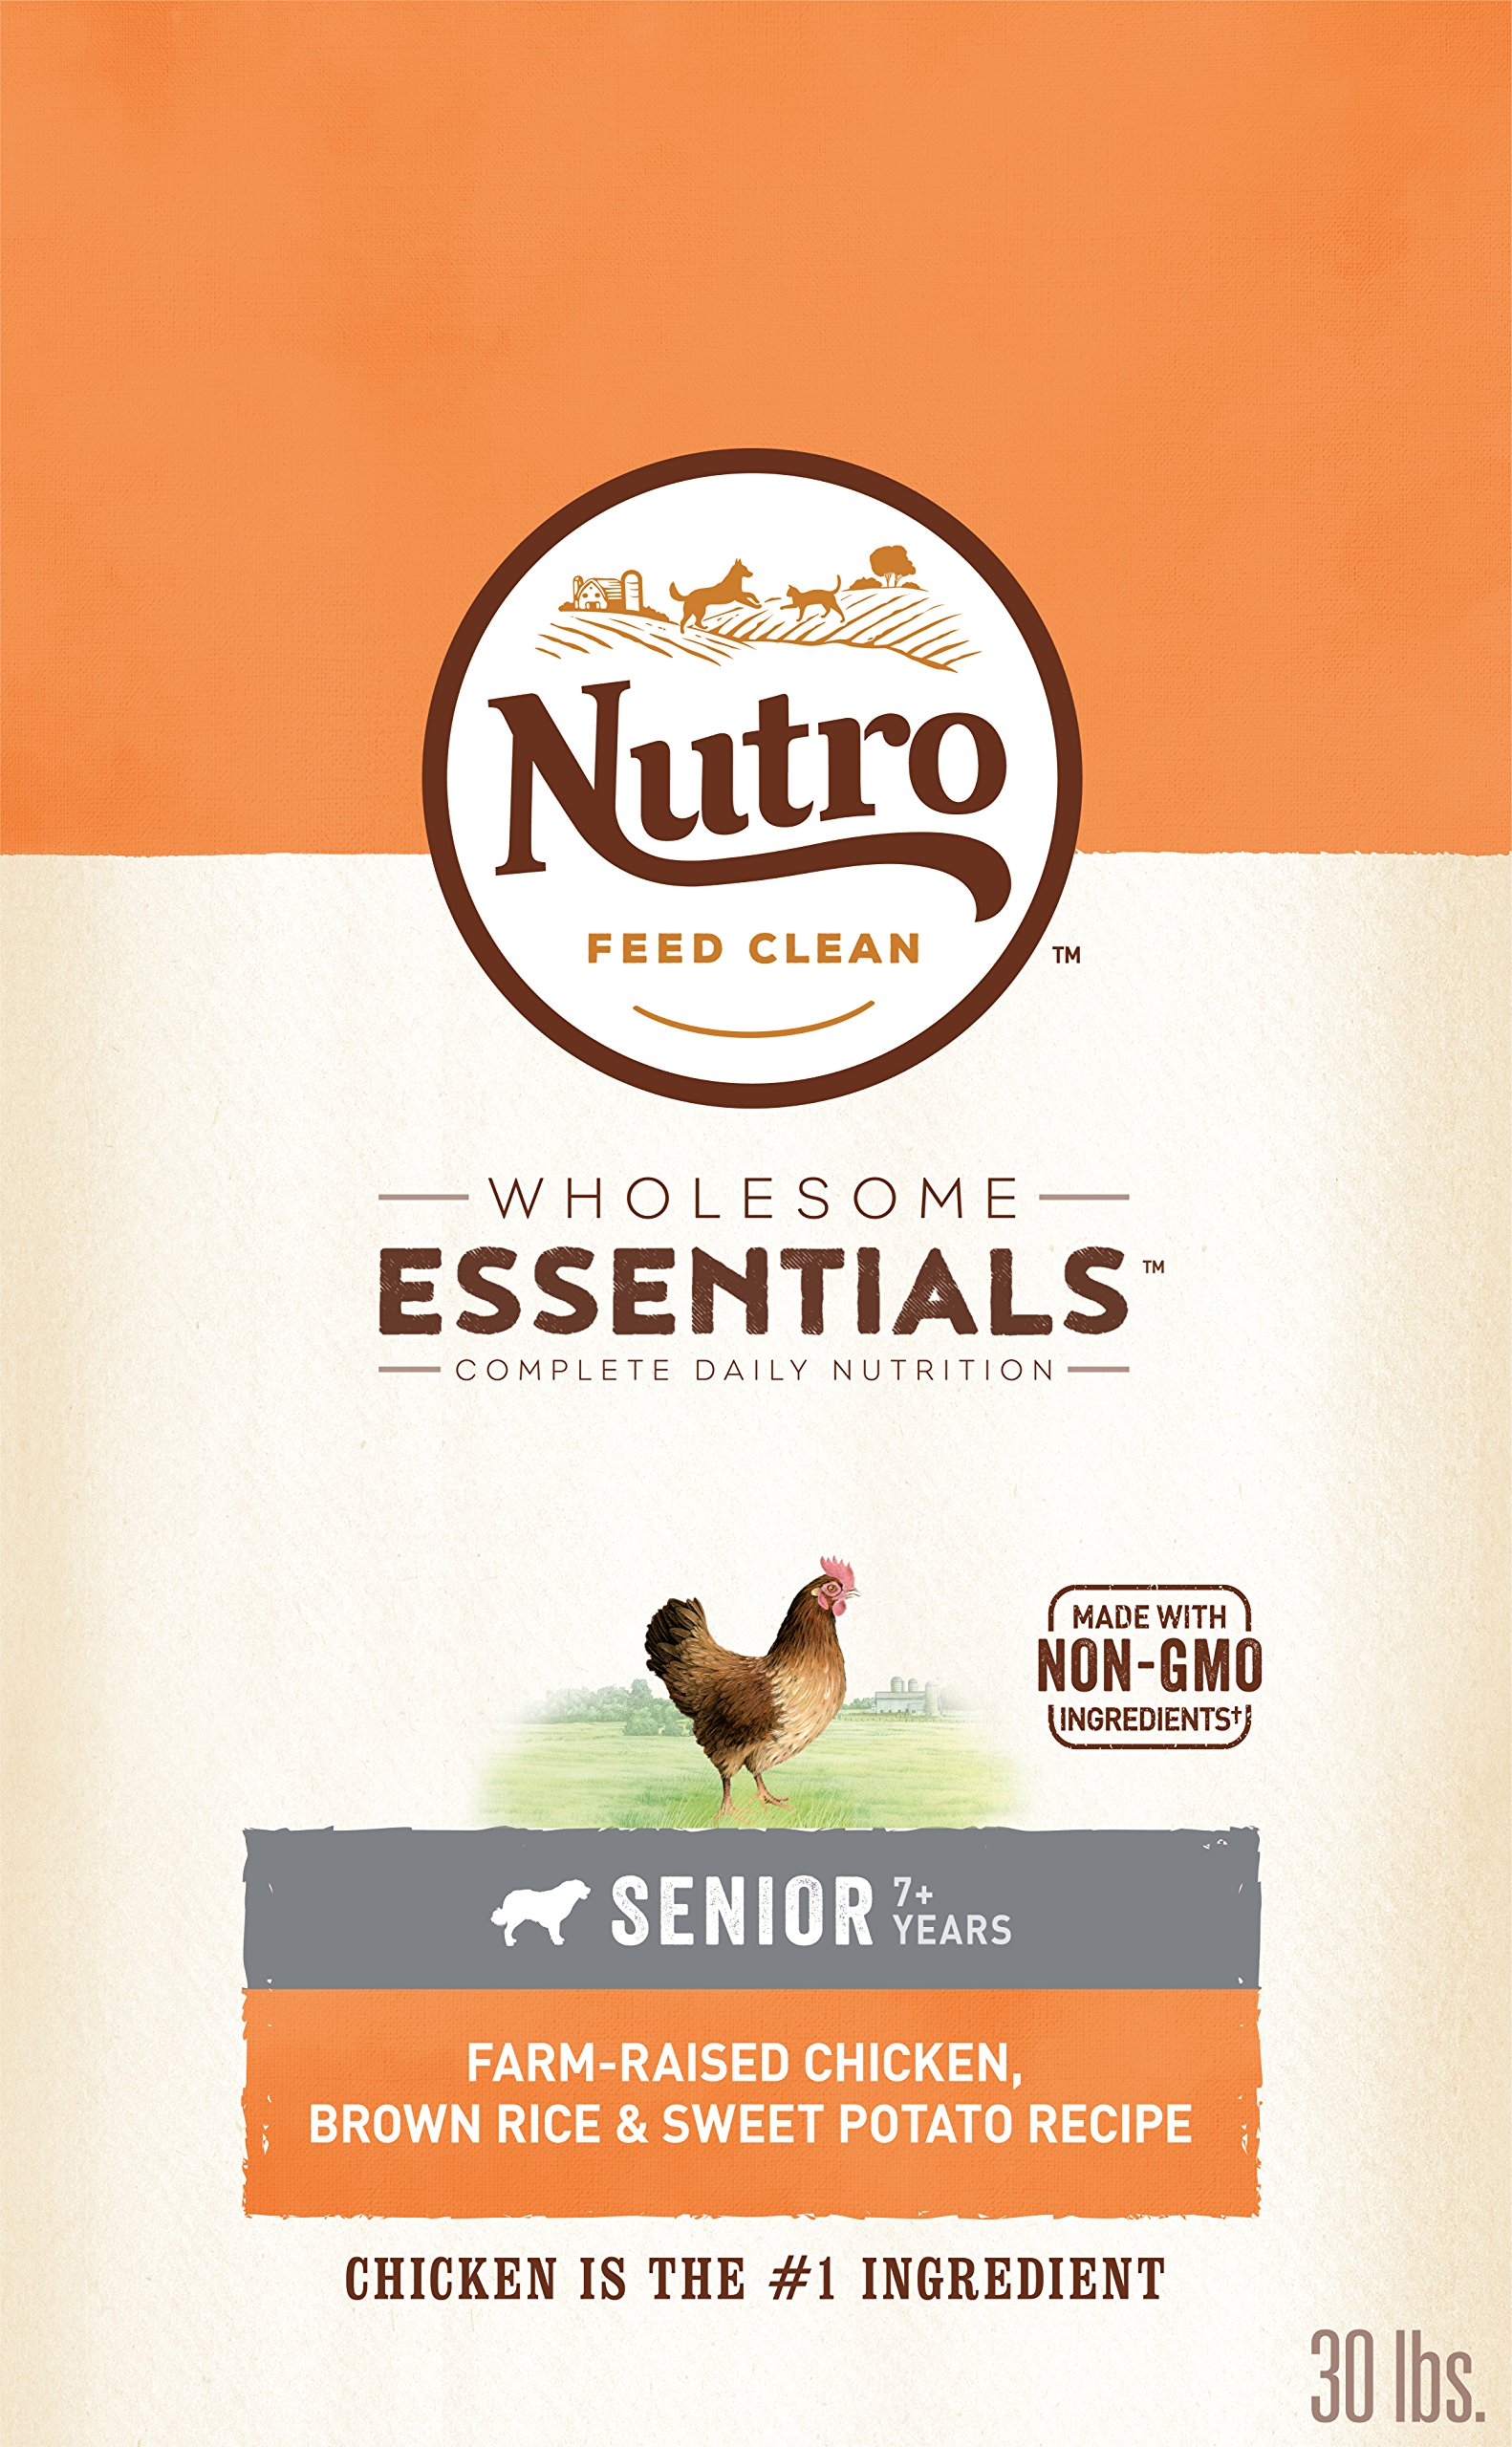 NUTRO WHOLESOME ESSENTIALS Natural Senior Dry Dog Food Farm-Raised Chicken, Brown Rice & Sweet Potato Recipe, 30 lb. Bag by Nutro